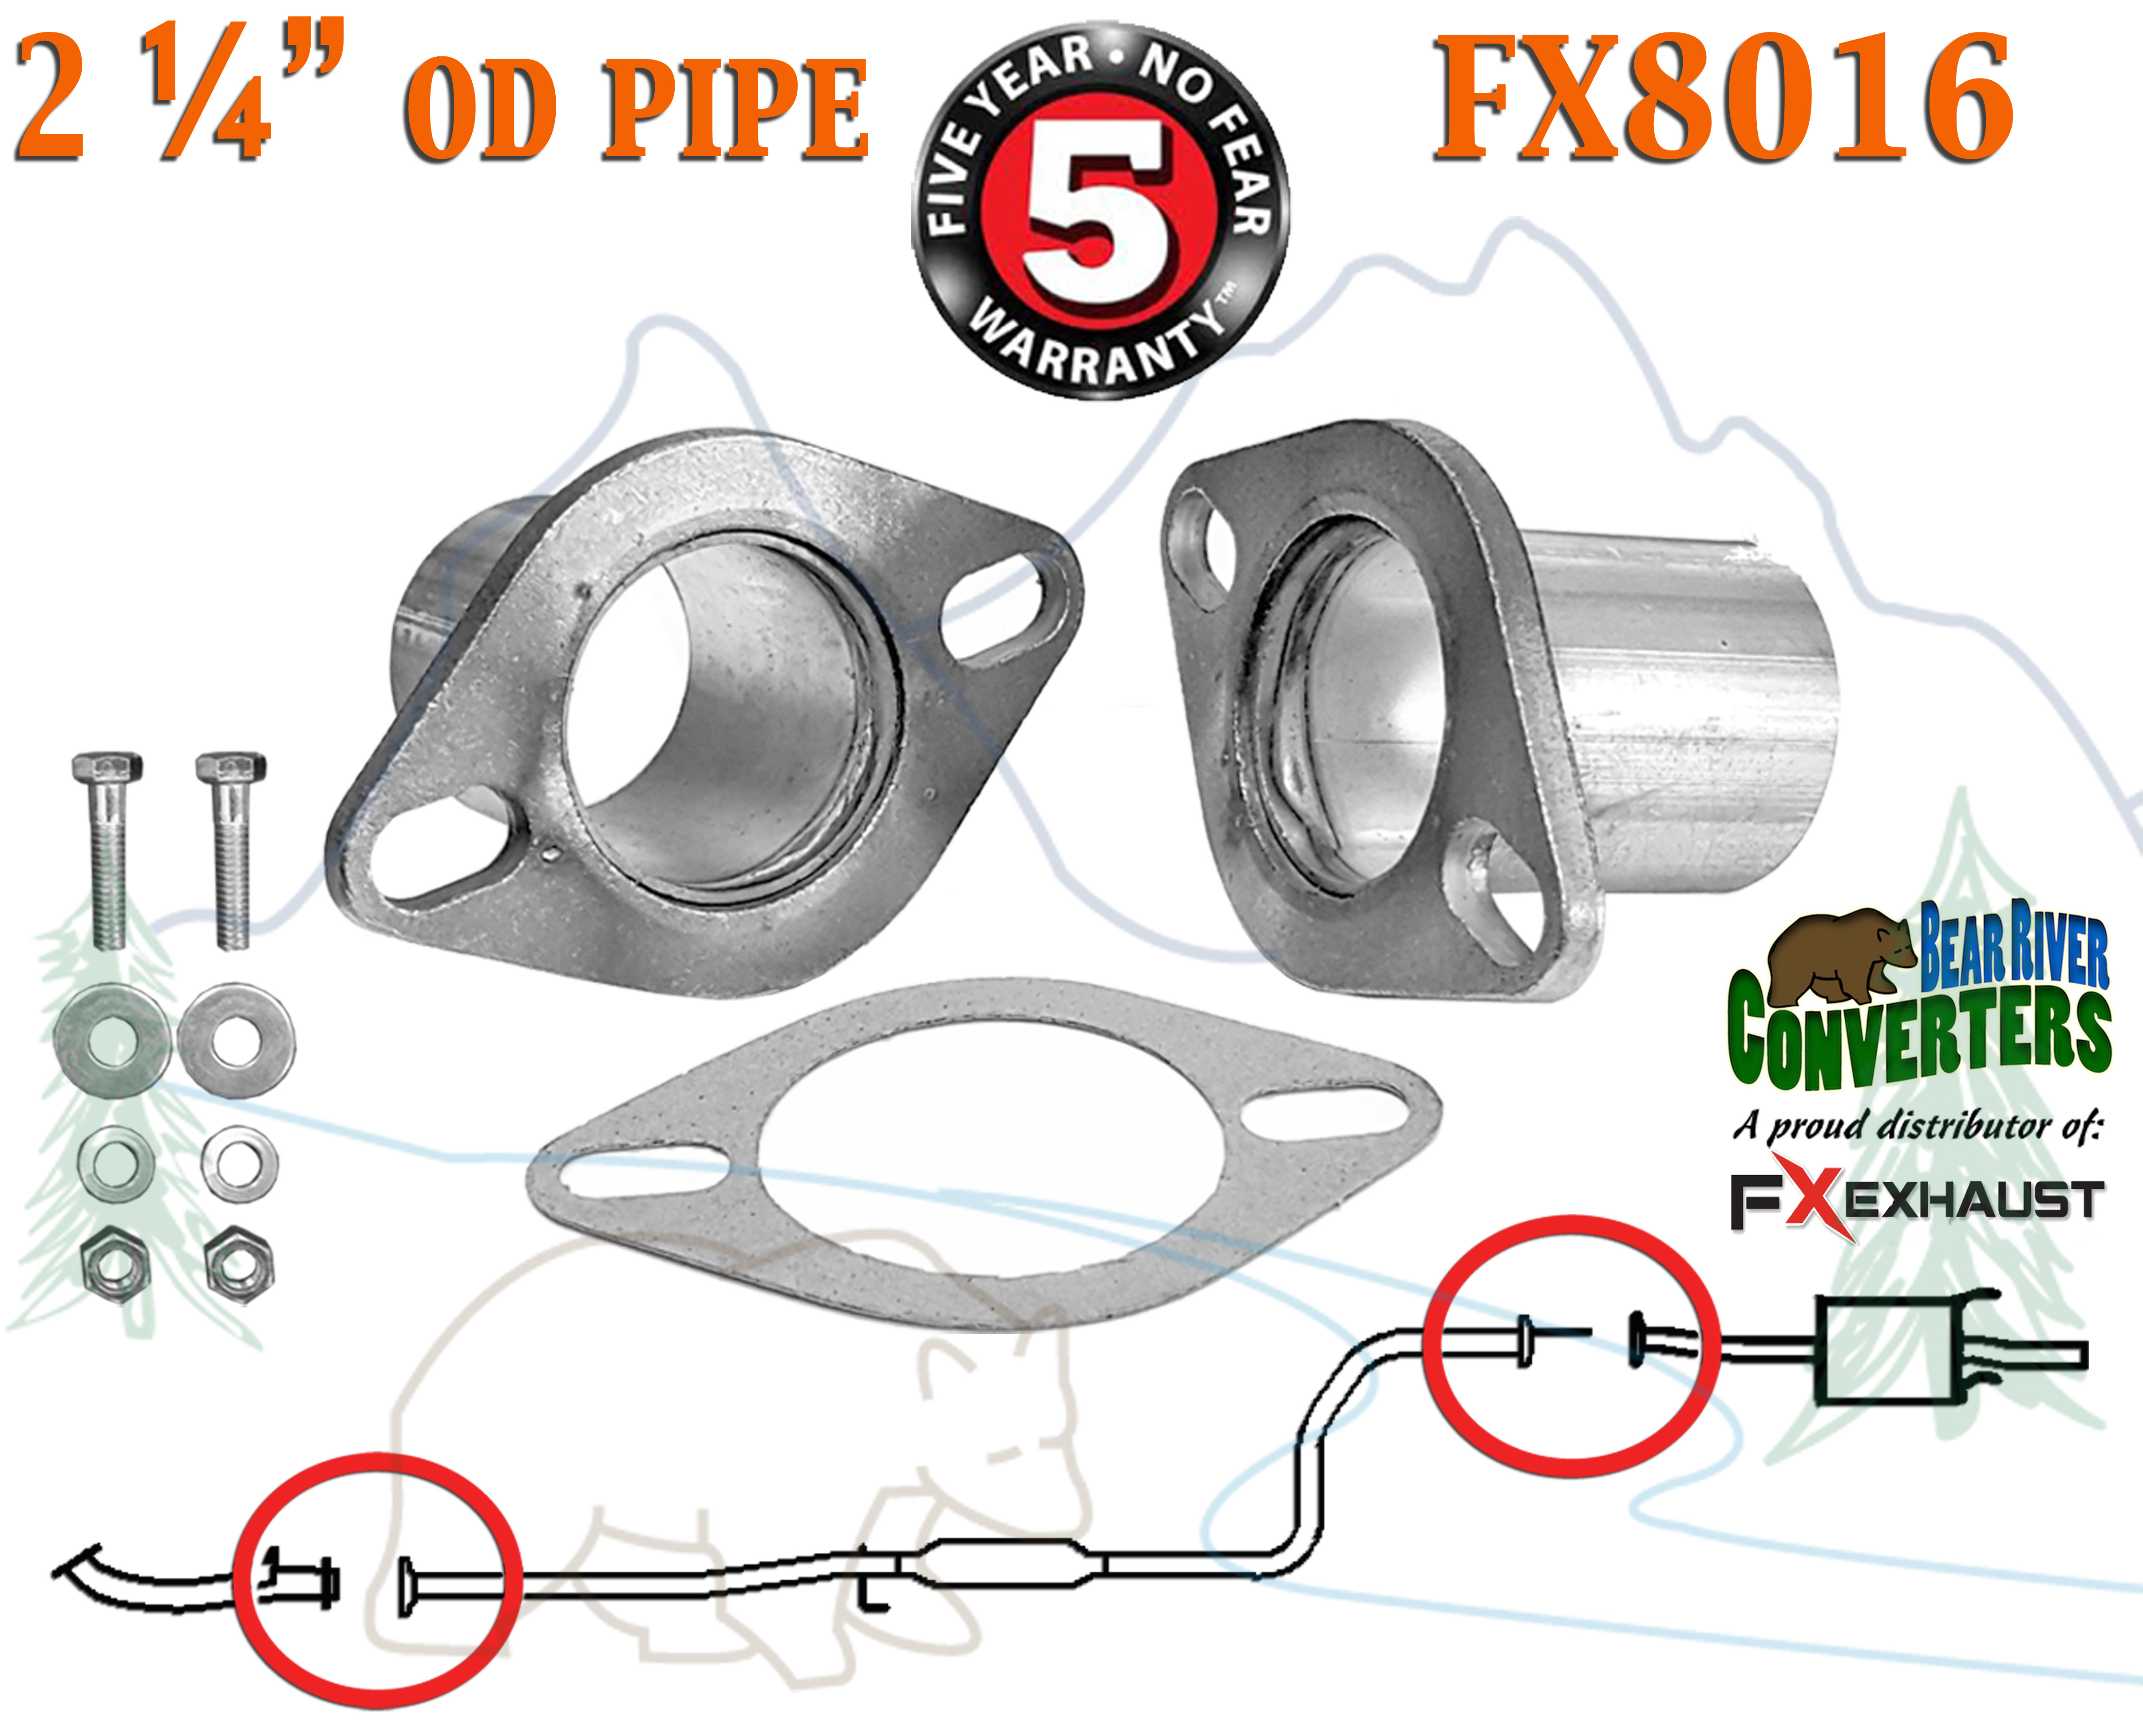 "FX8016 2 1 4"" OD Universal QuickFix Exhaust Oval Flange Repair Pipe"